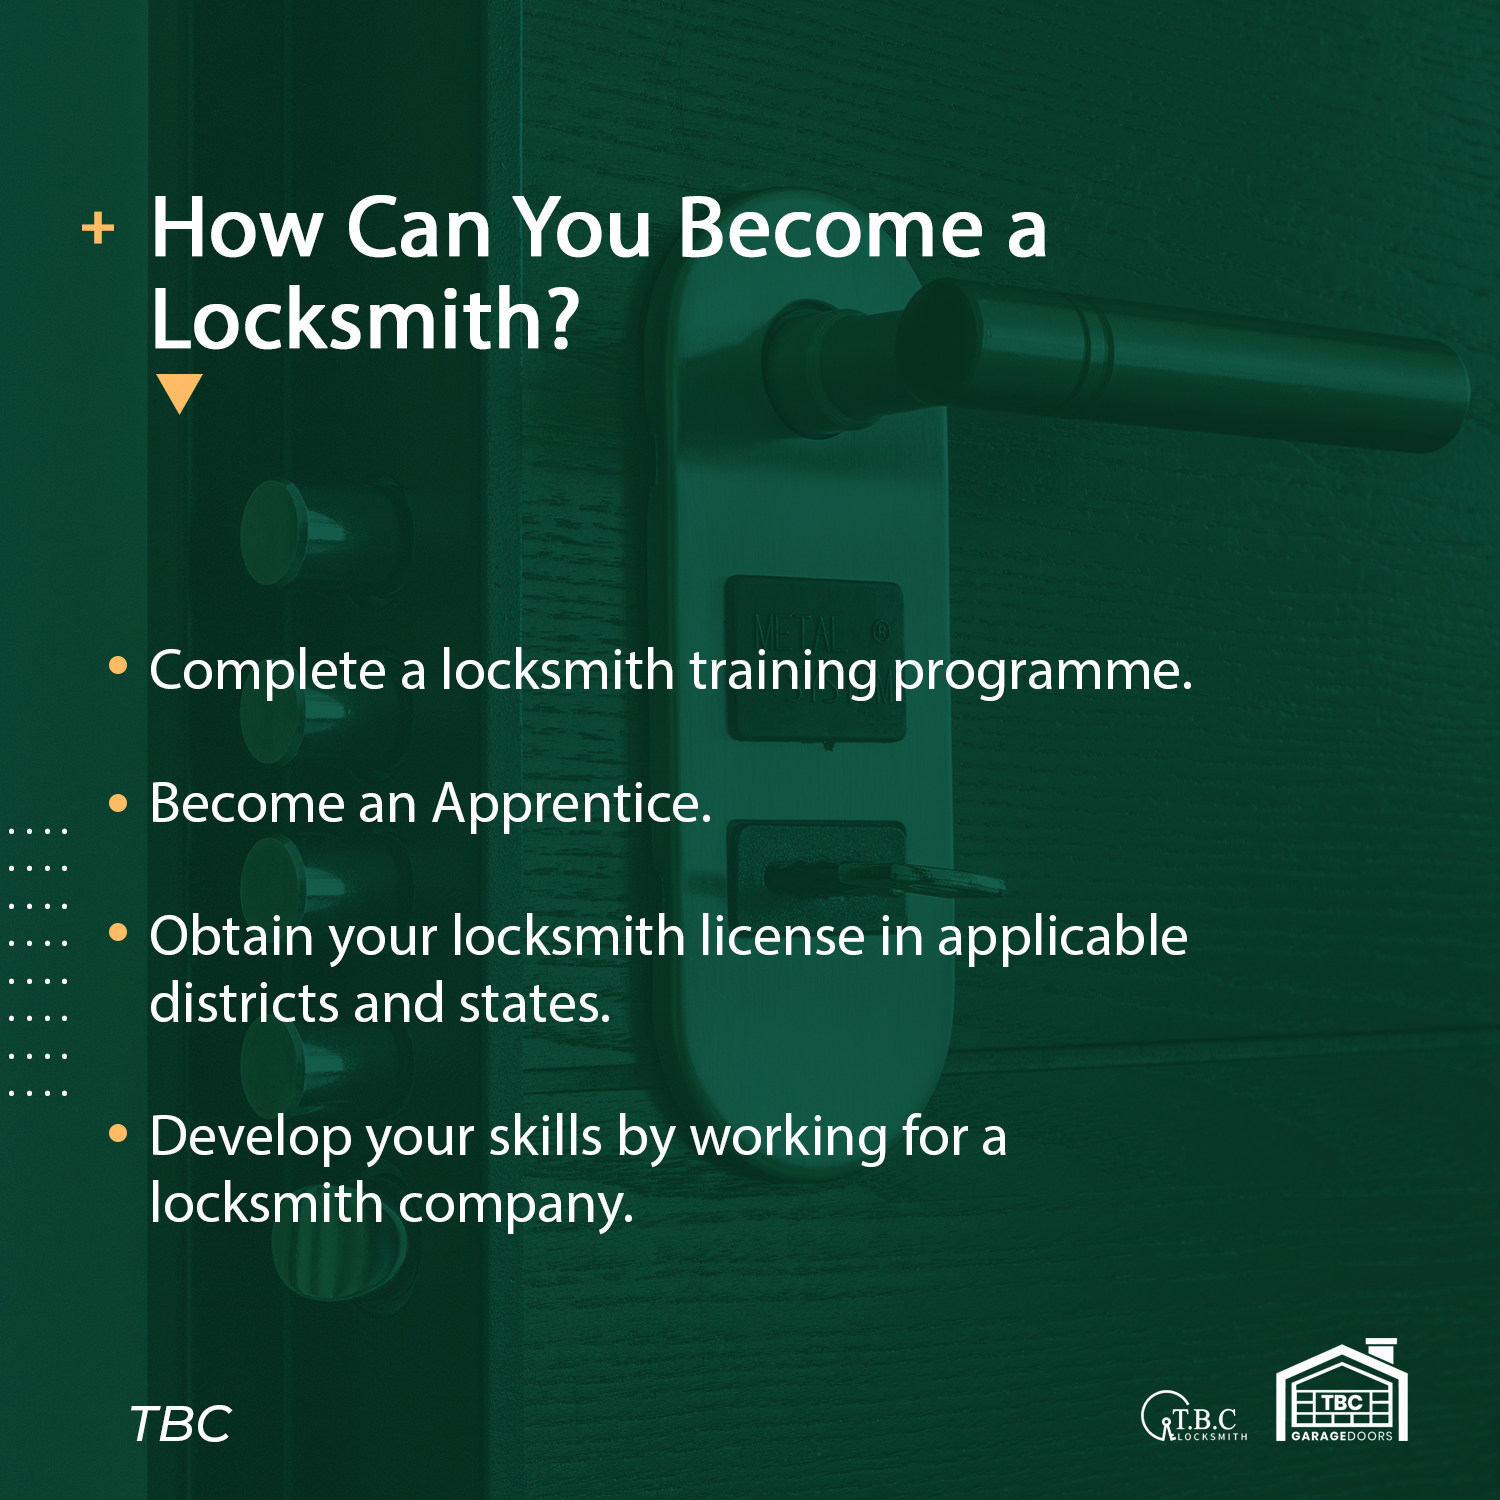 How Can You Become a Locksmith?